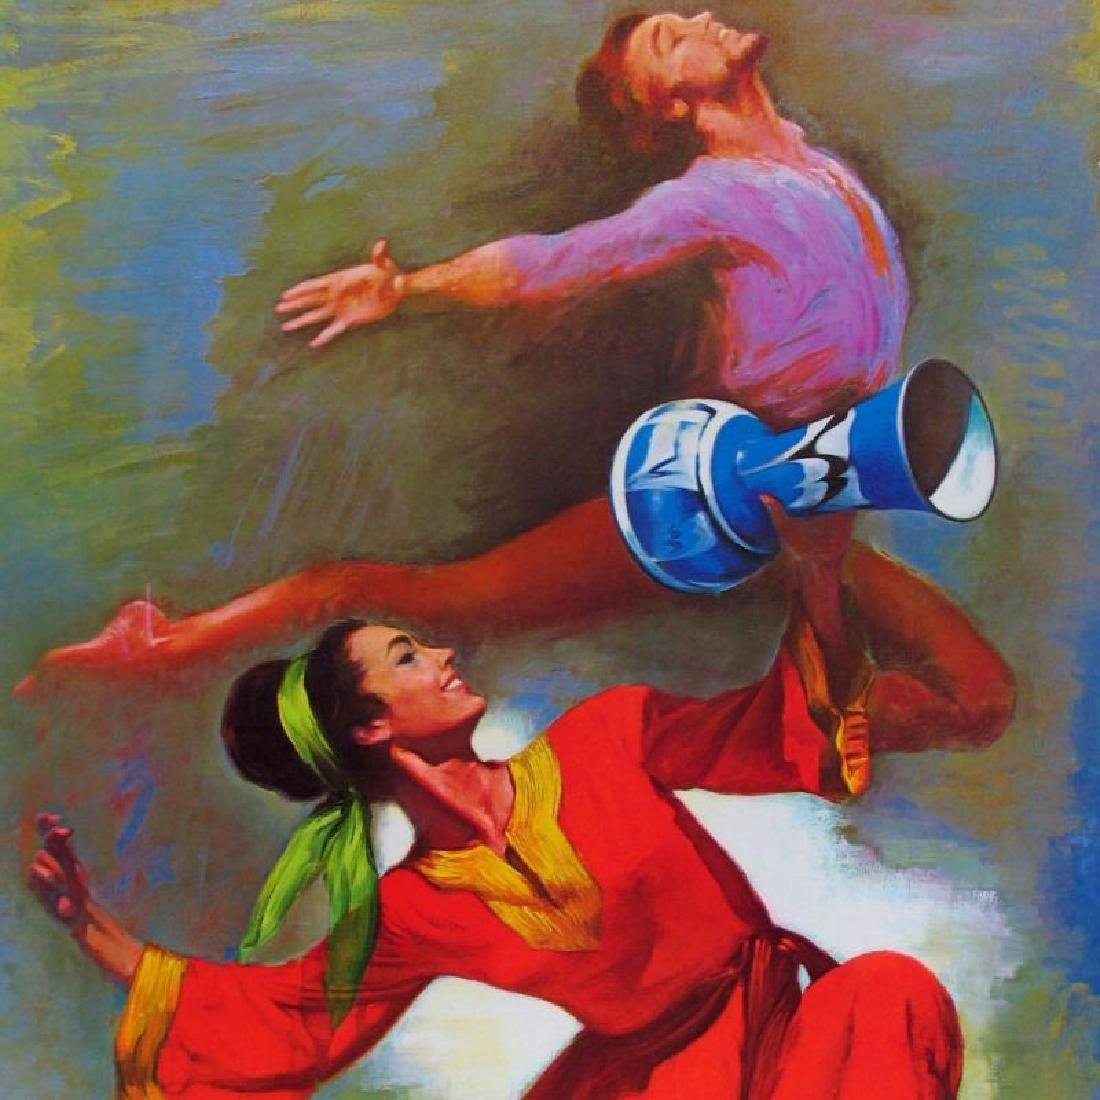 Dancers Lieberman Colorful Limited Edition Art - 3